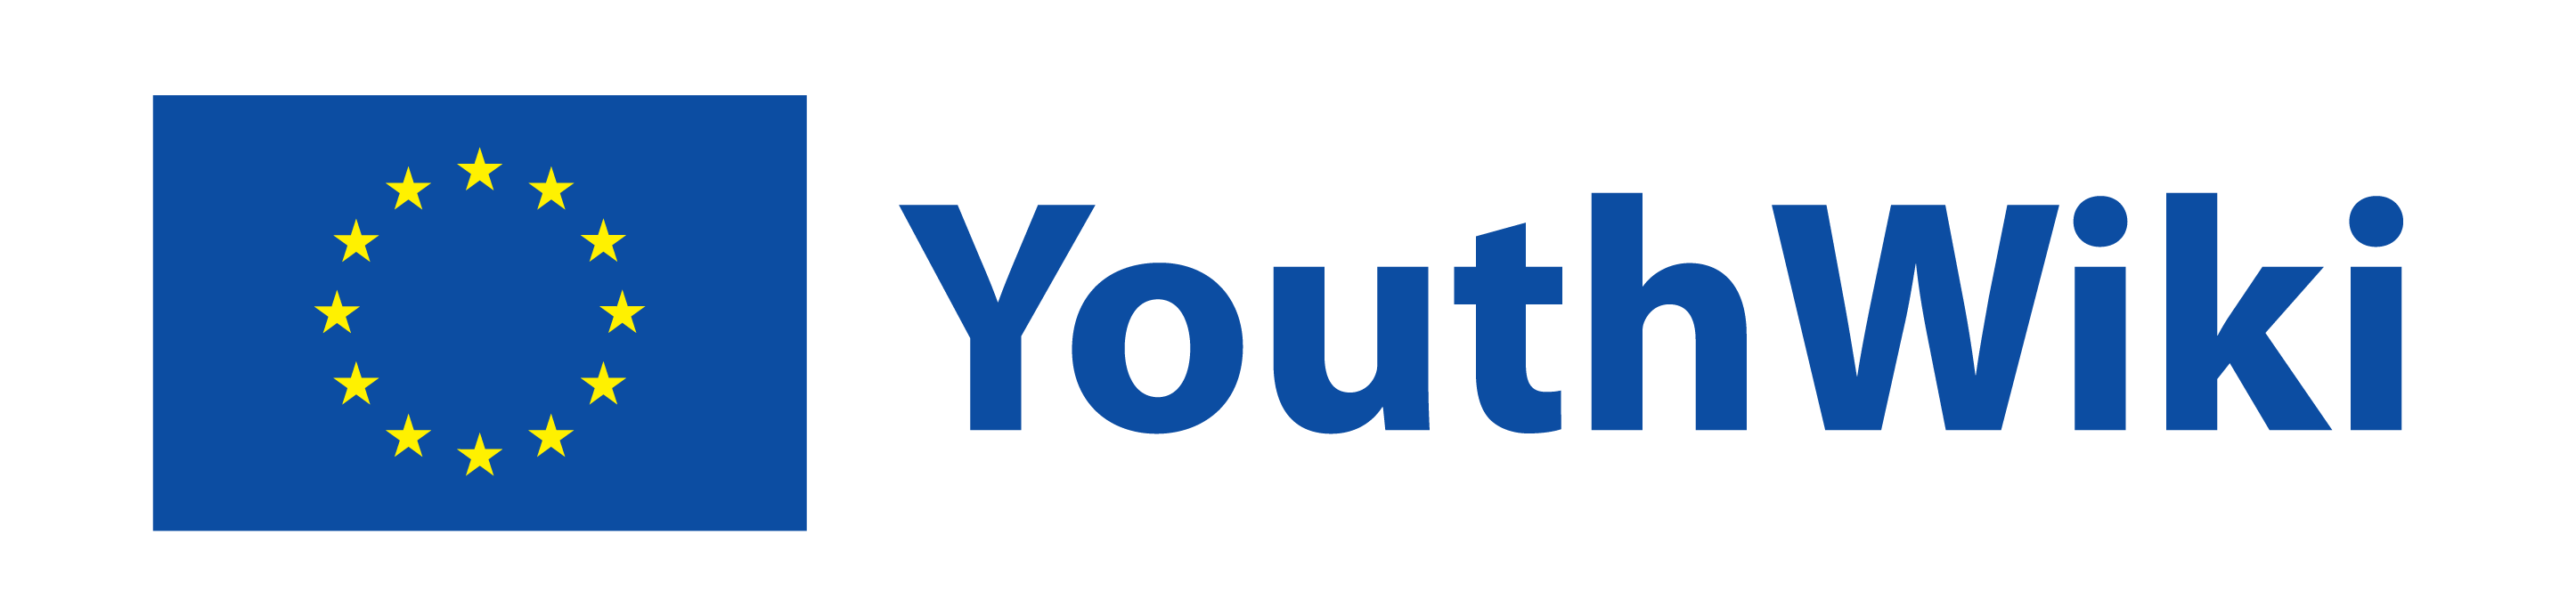 youthwiki-pos.png